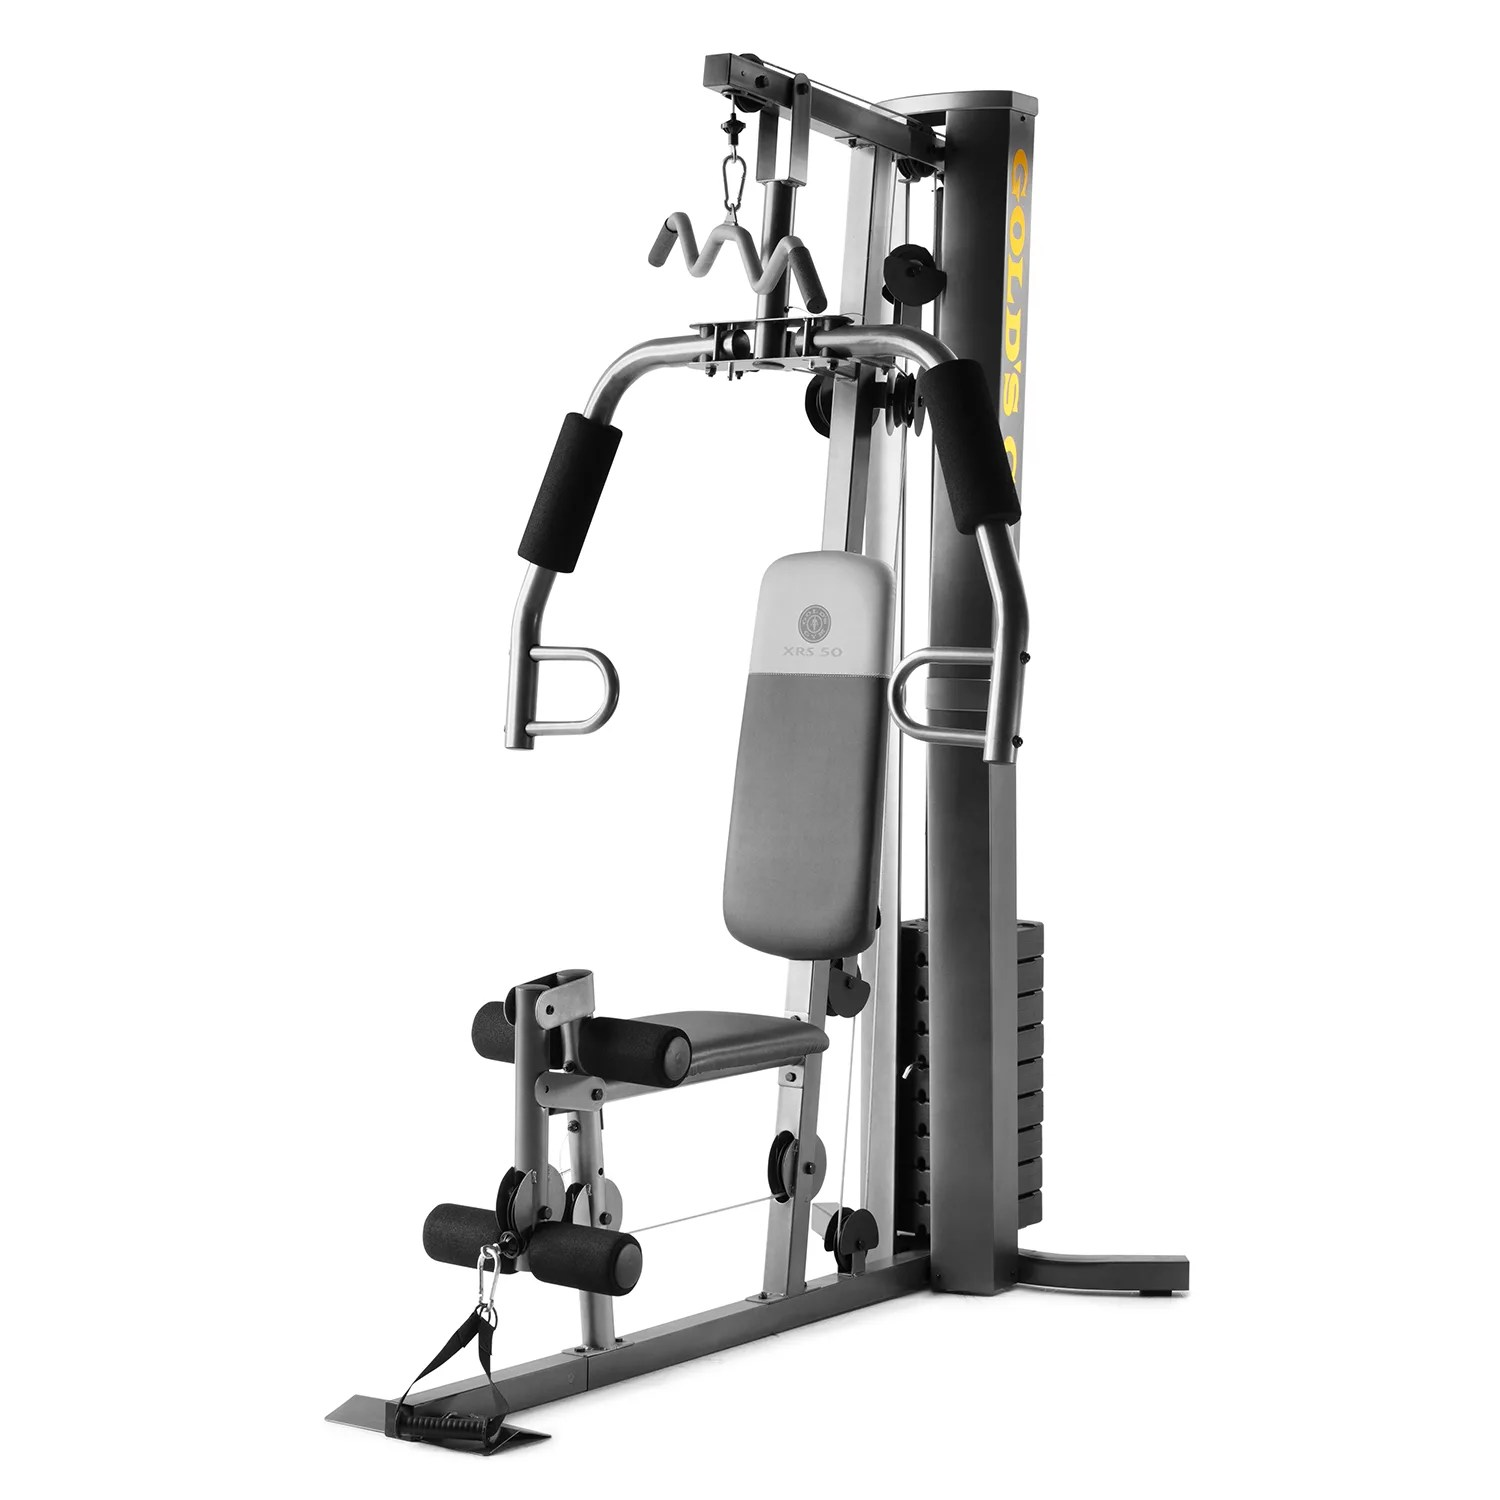 chair gym dvd set are zero gravity chairs good for your back fitness equipment exercise kohl s gold xrs 50 system